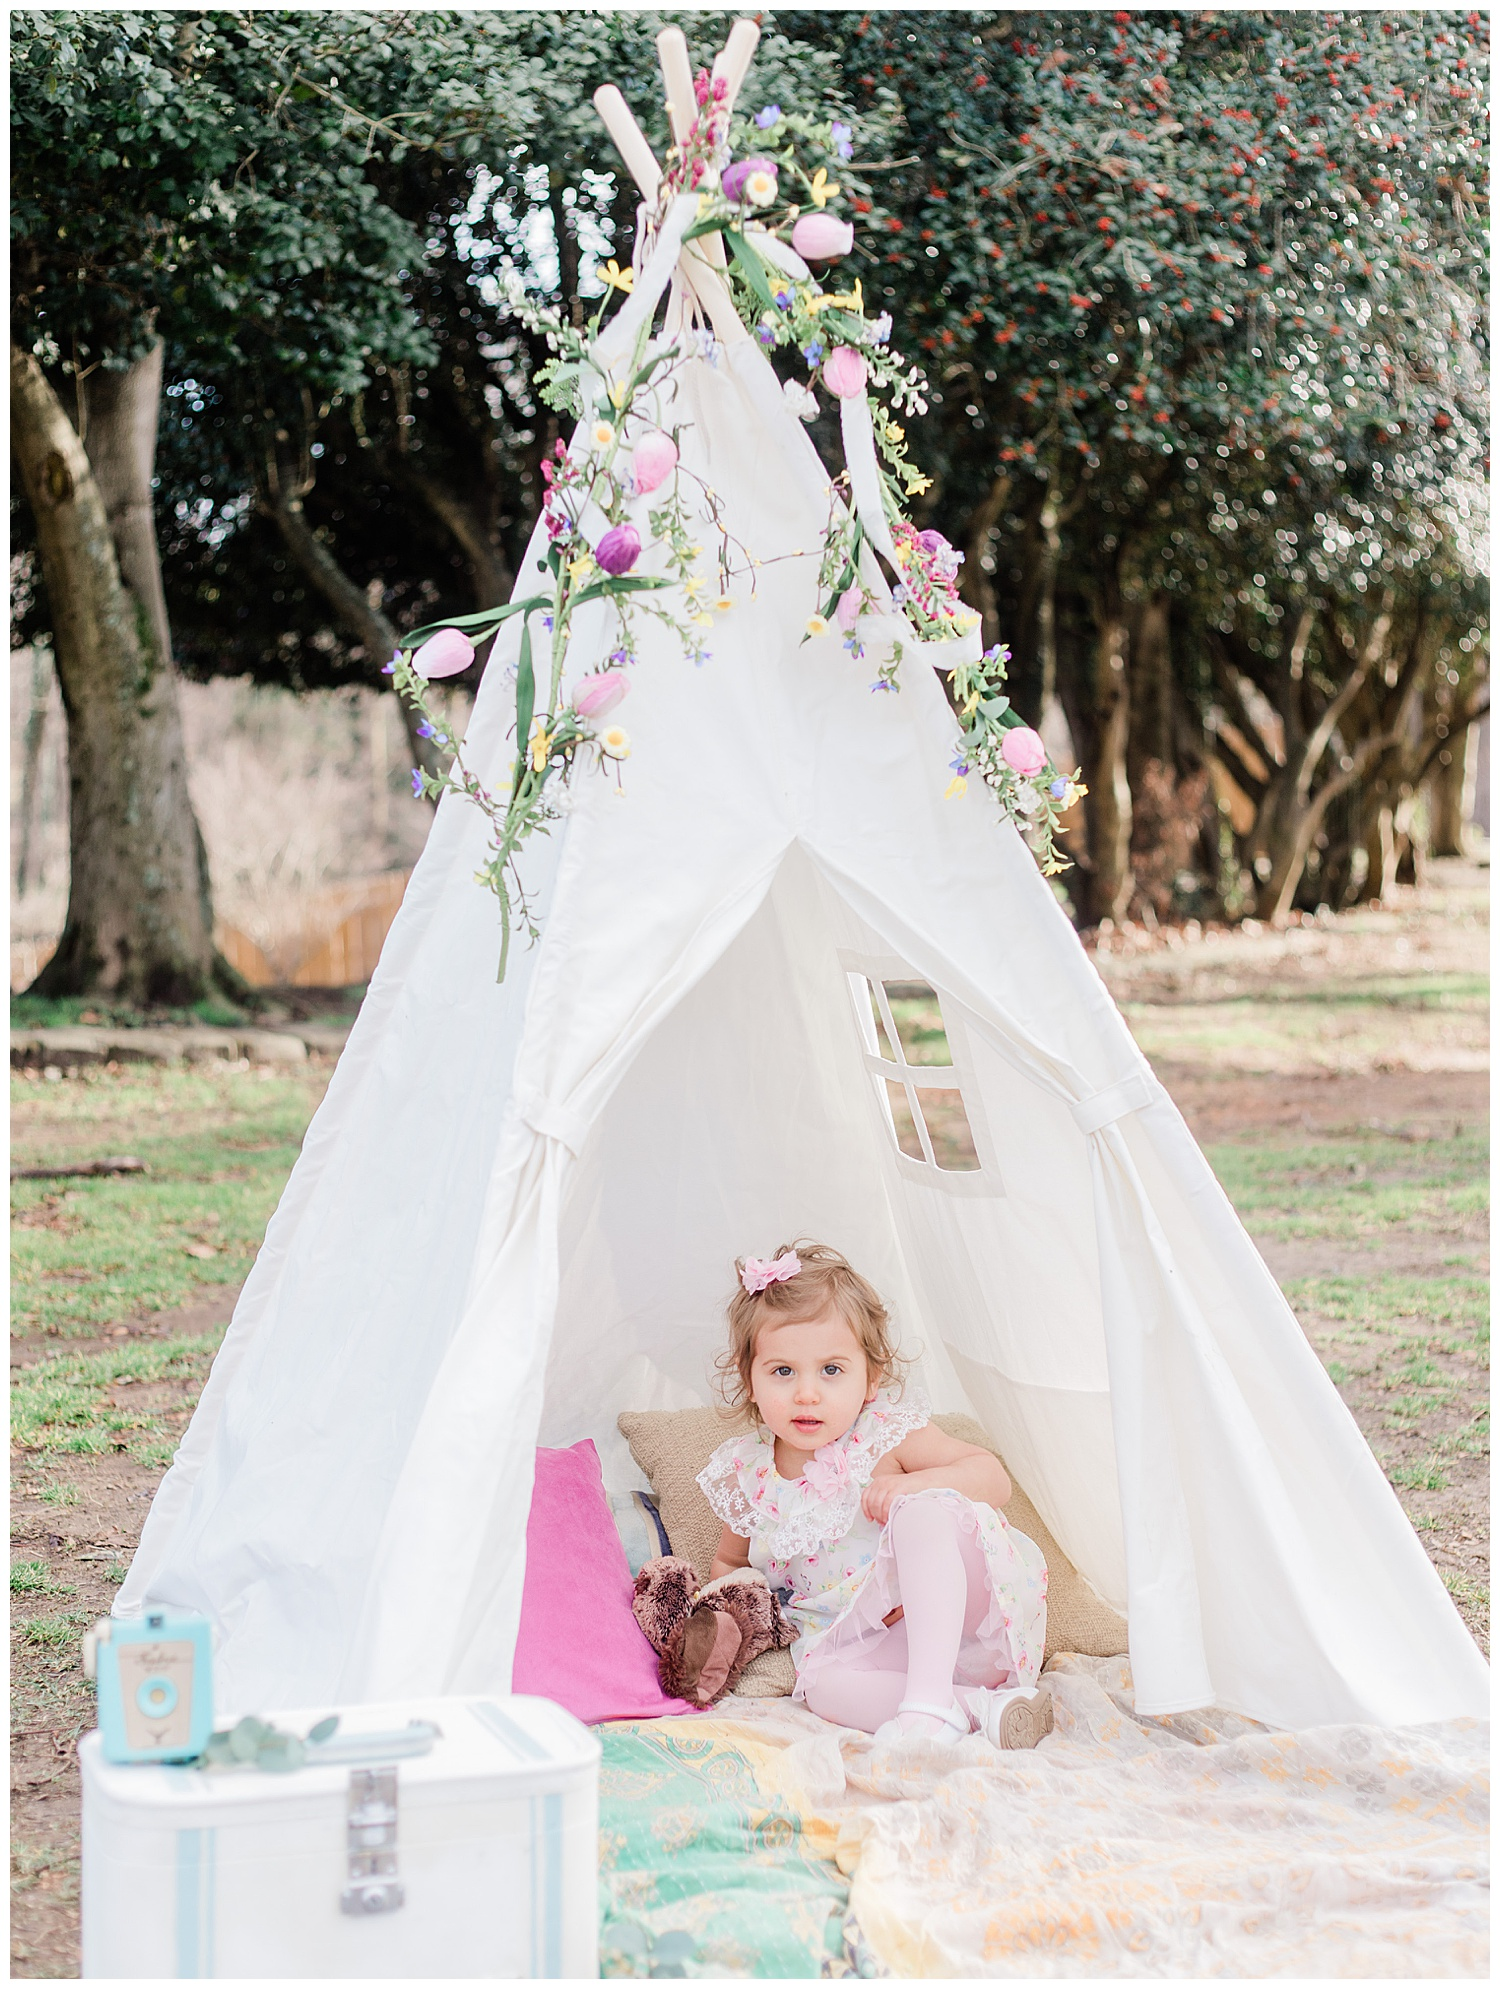 Kids TeePee Photos - Bohemian Styled Shoot